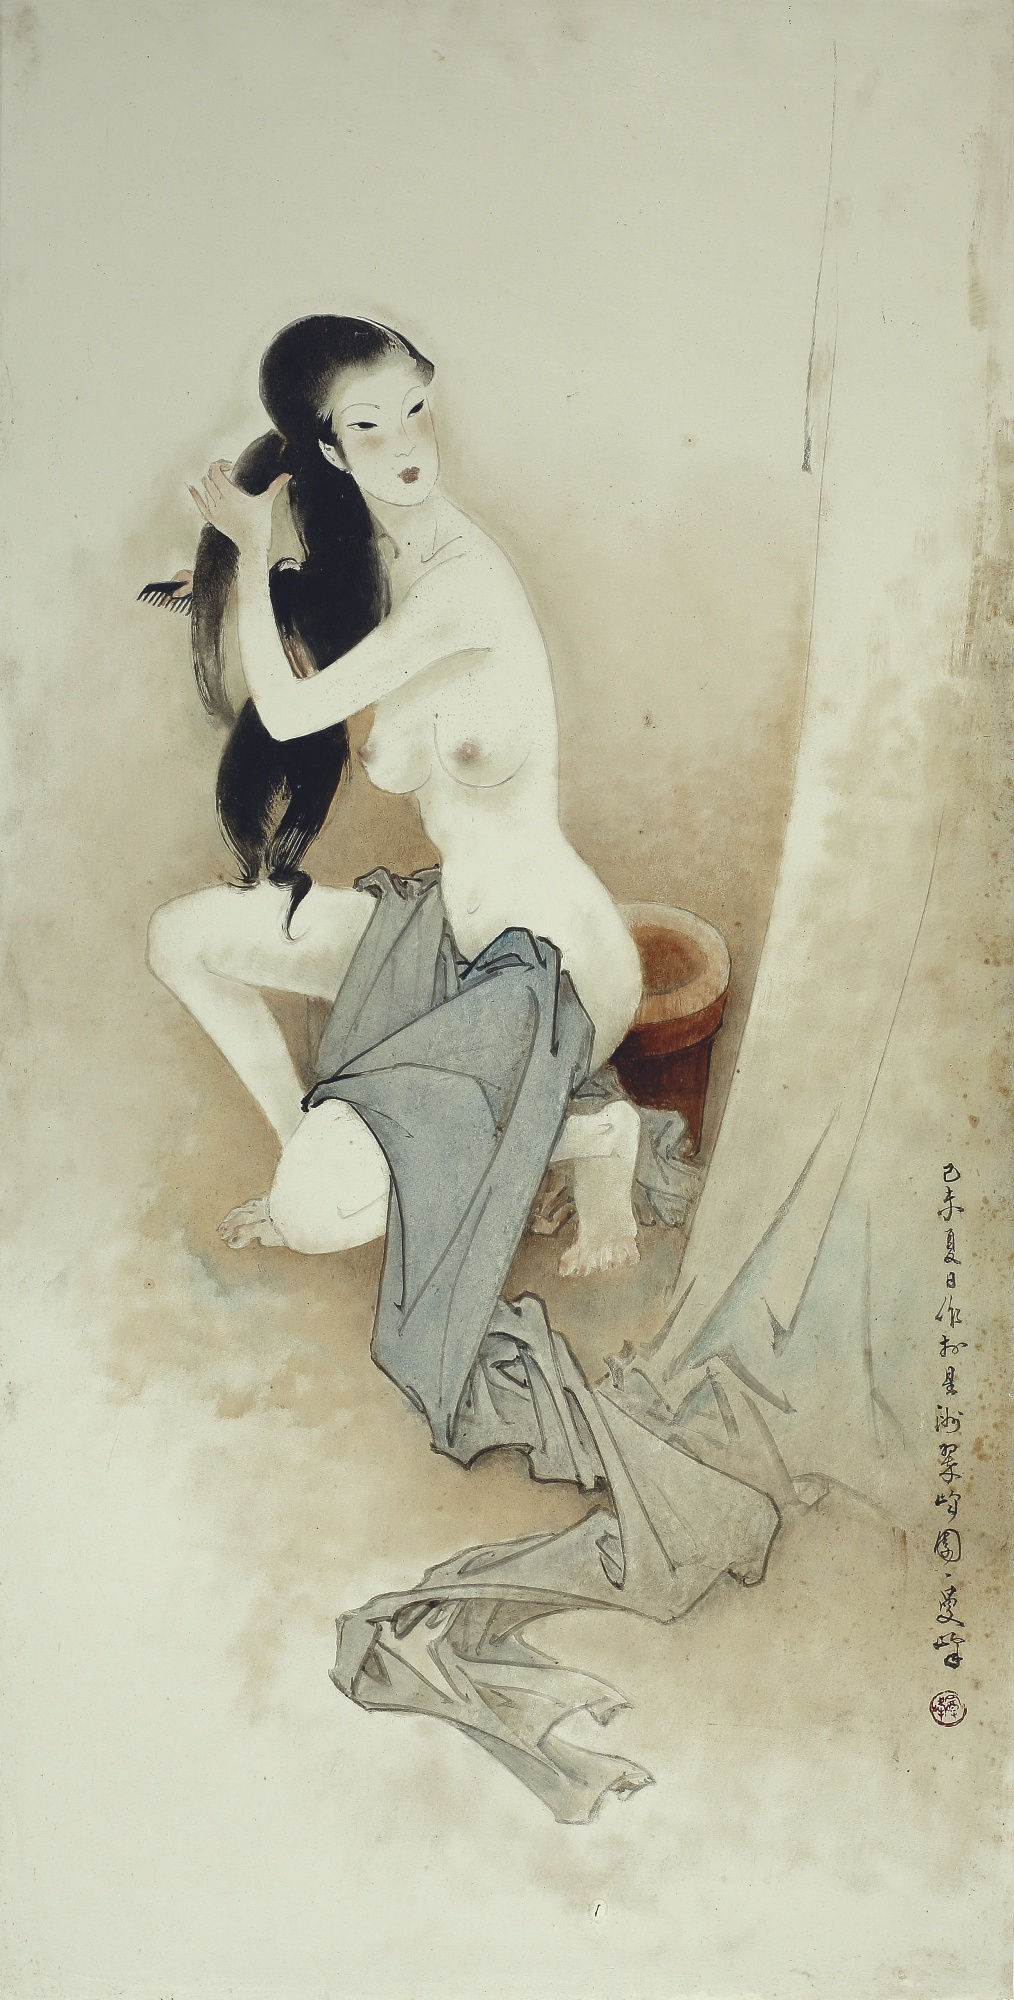 Lee Man Fong-Setelah Mandi (After The Bath)-1979